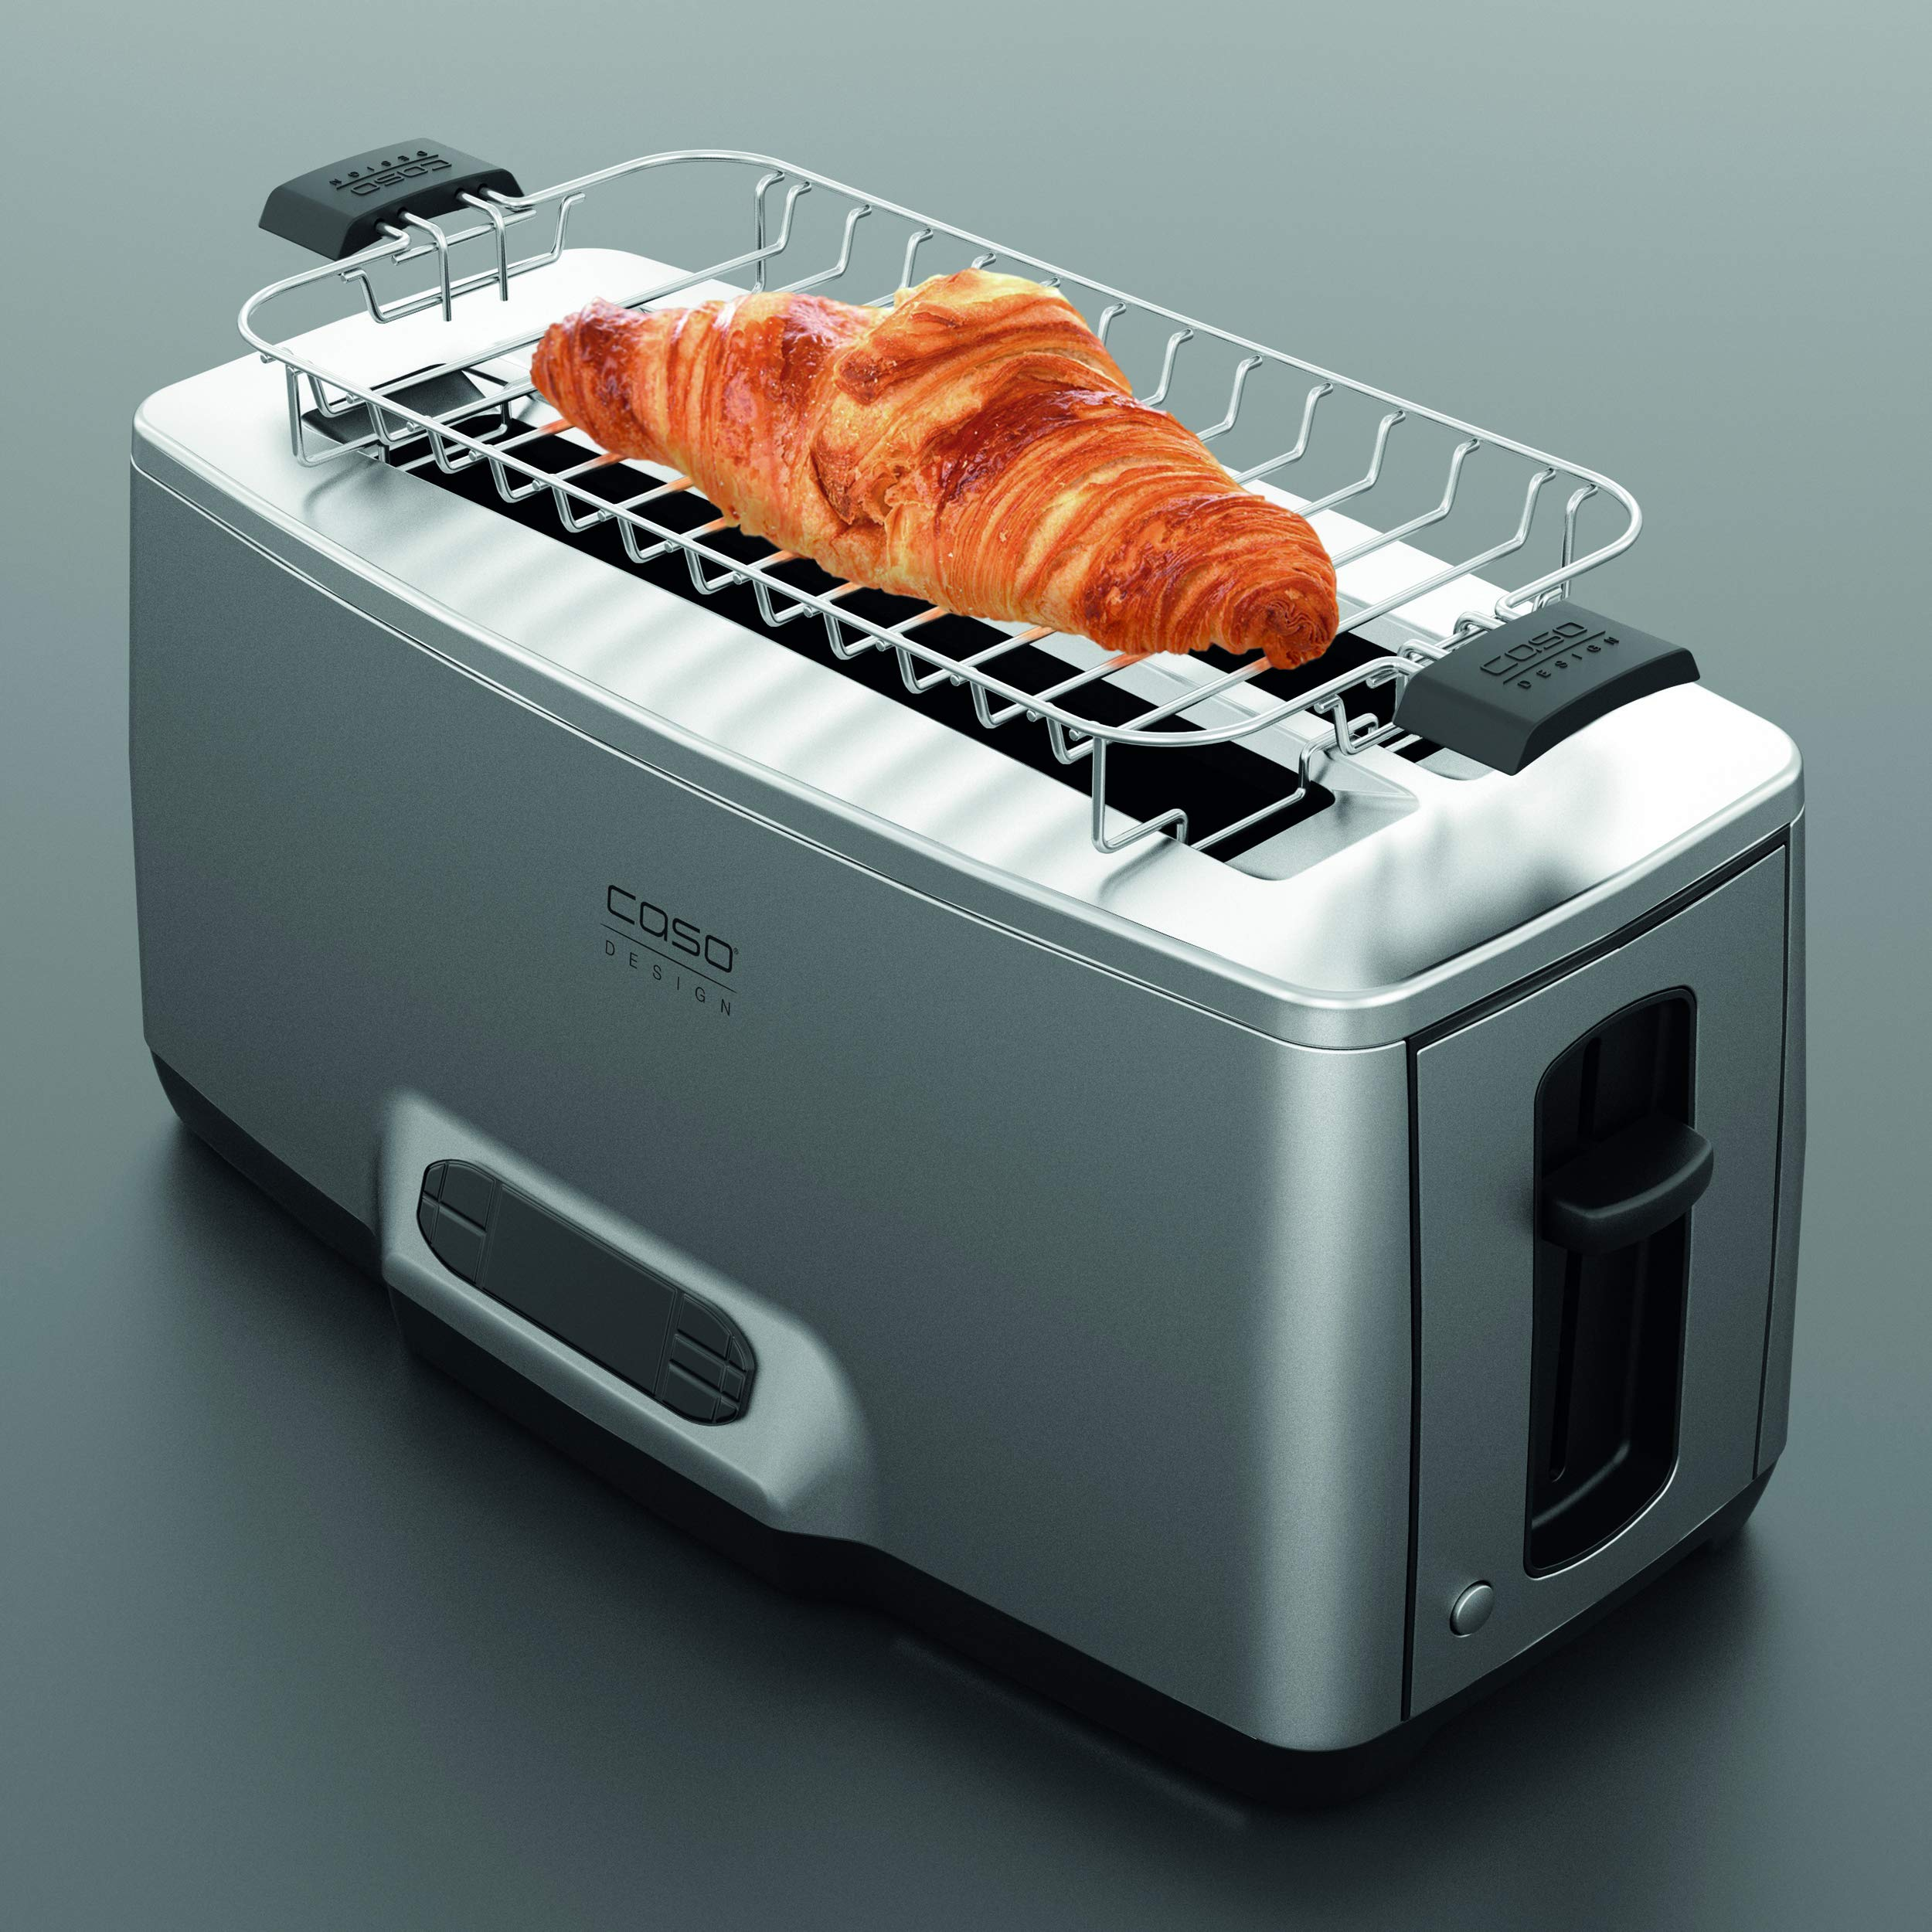 Caso Design INOX.4 Four-Slice Toaster with Wire Warming Basket Attachment, 4, Stainless by Caso Design (Image #2)